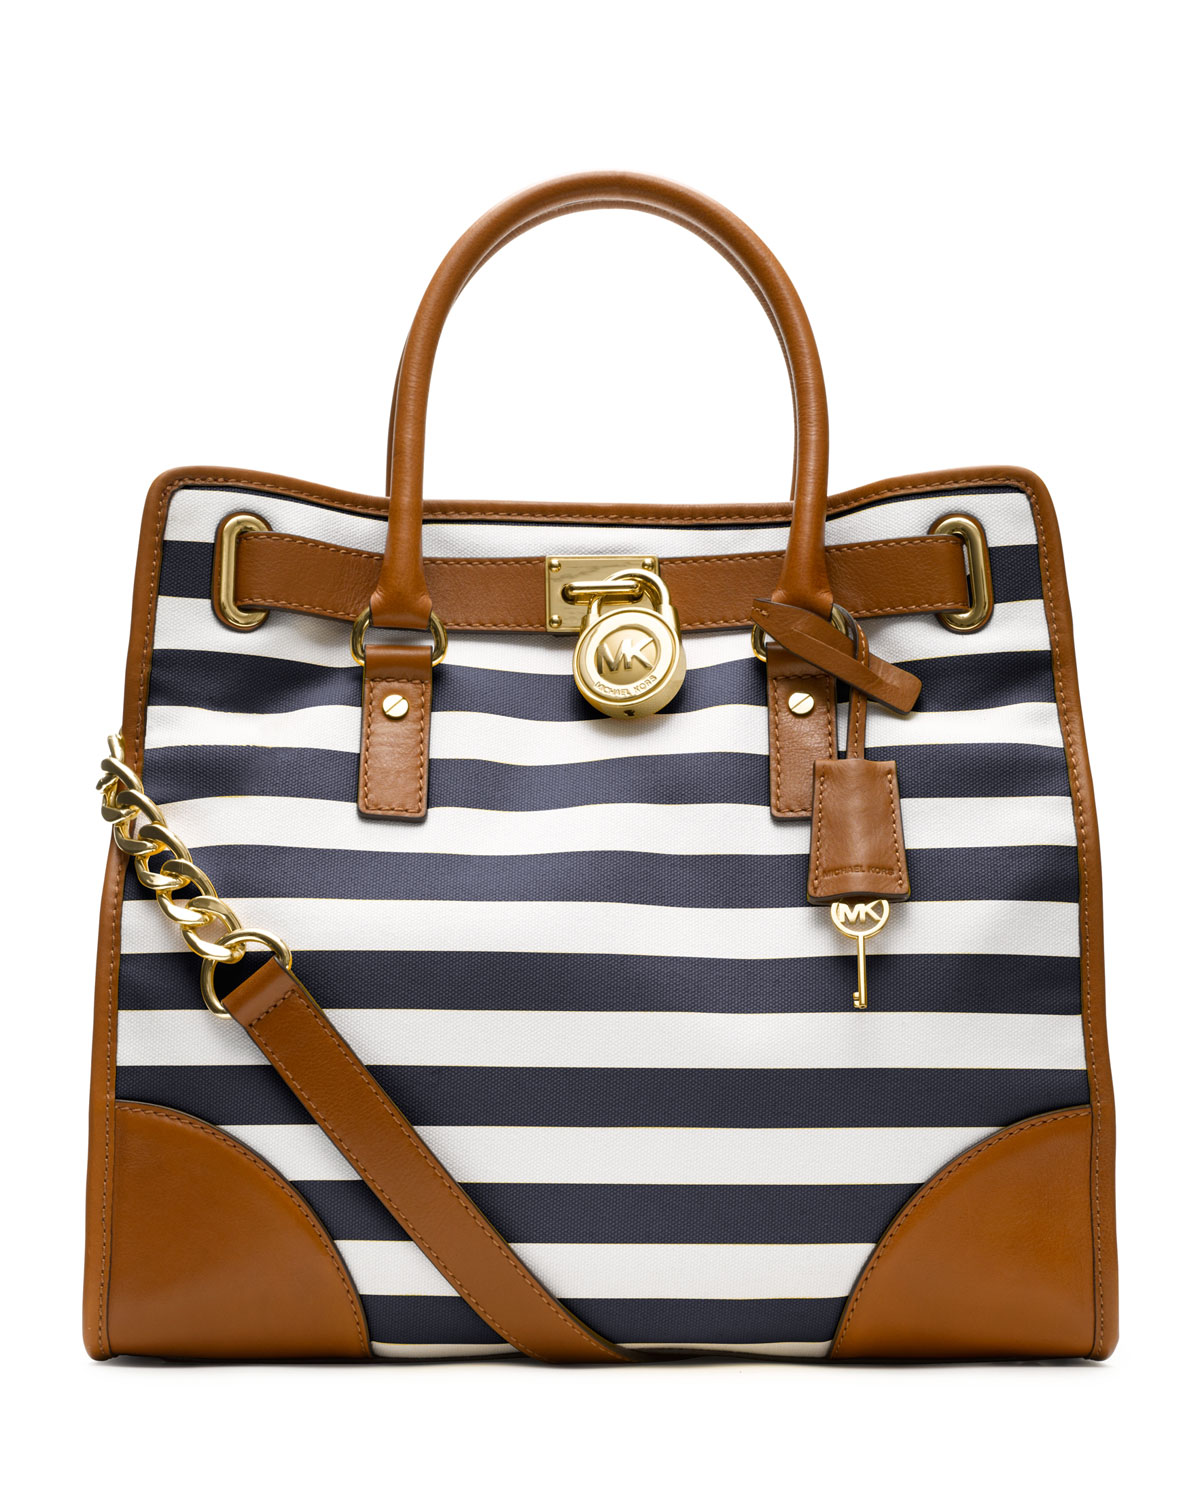 Lyst - Michael Kors Large Hamilton Striped Canvas Tote in Blue 25a164ab76307